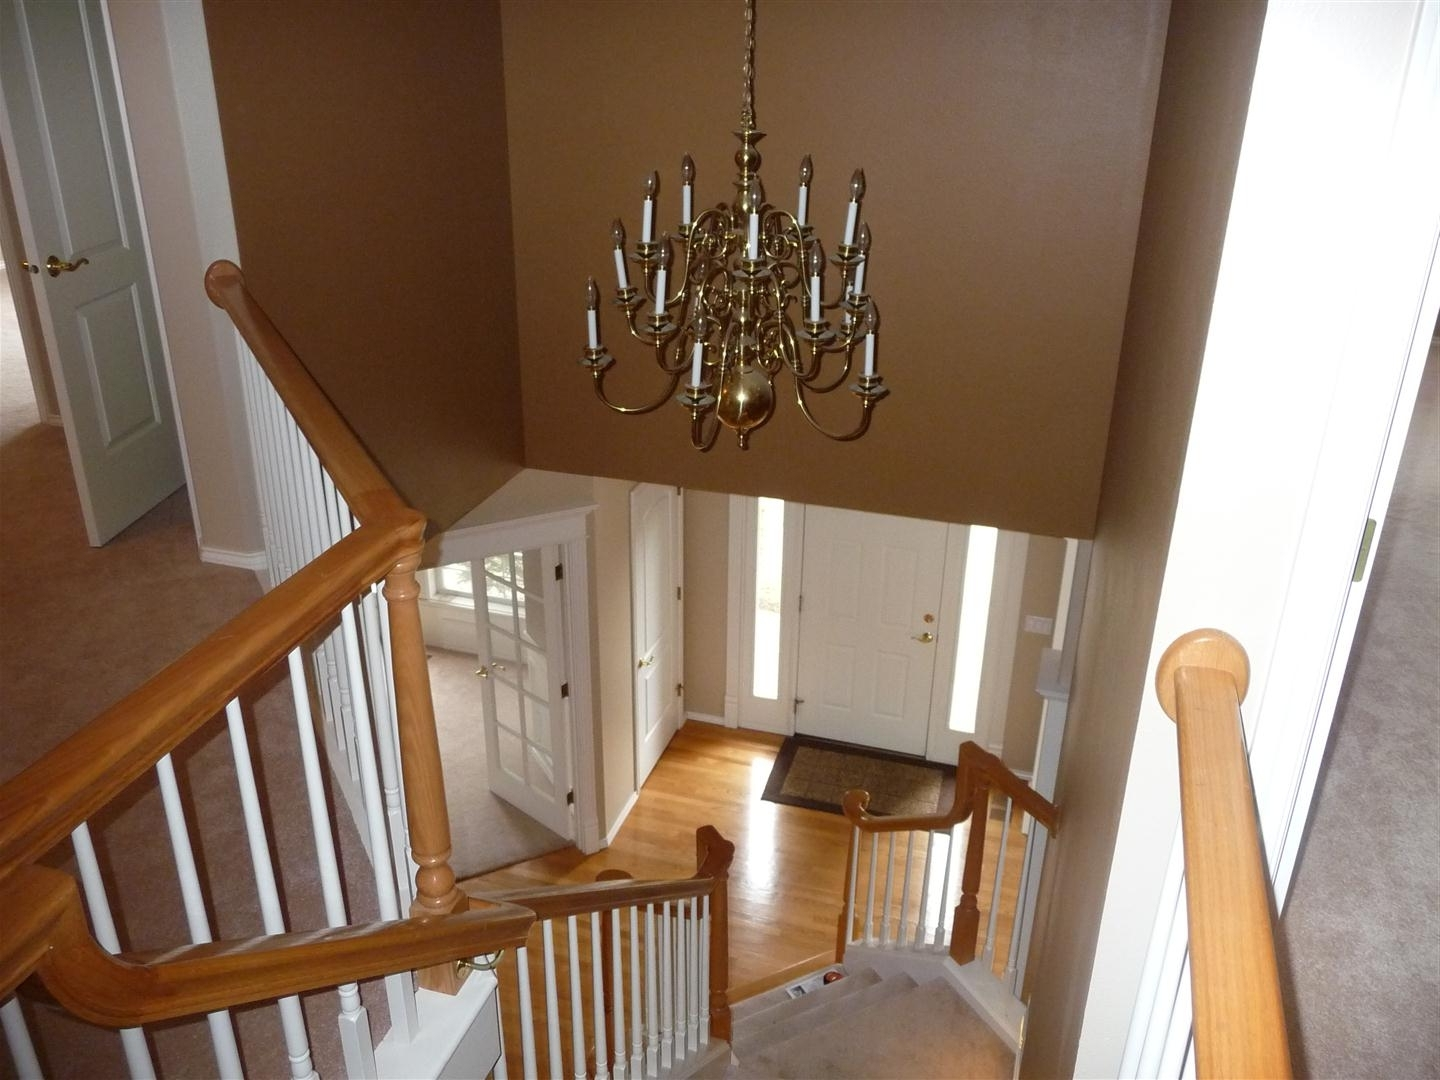 Replacing Chandelier – Entry Is 2 Stories Tall (Phone, Painting Within Recent Stairway Chandeliers (View 16 of 20)